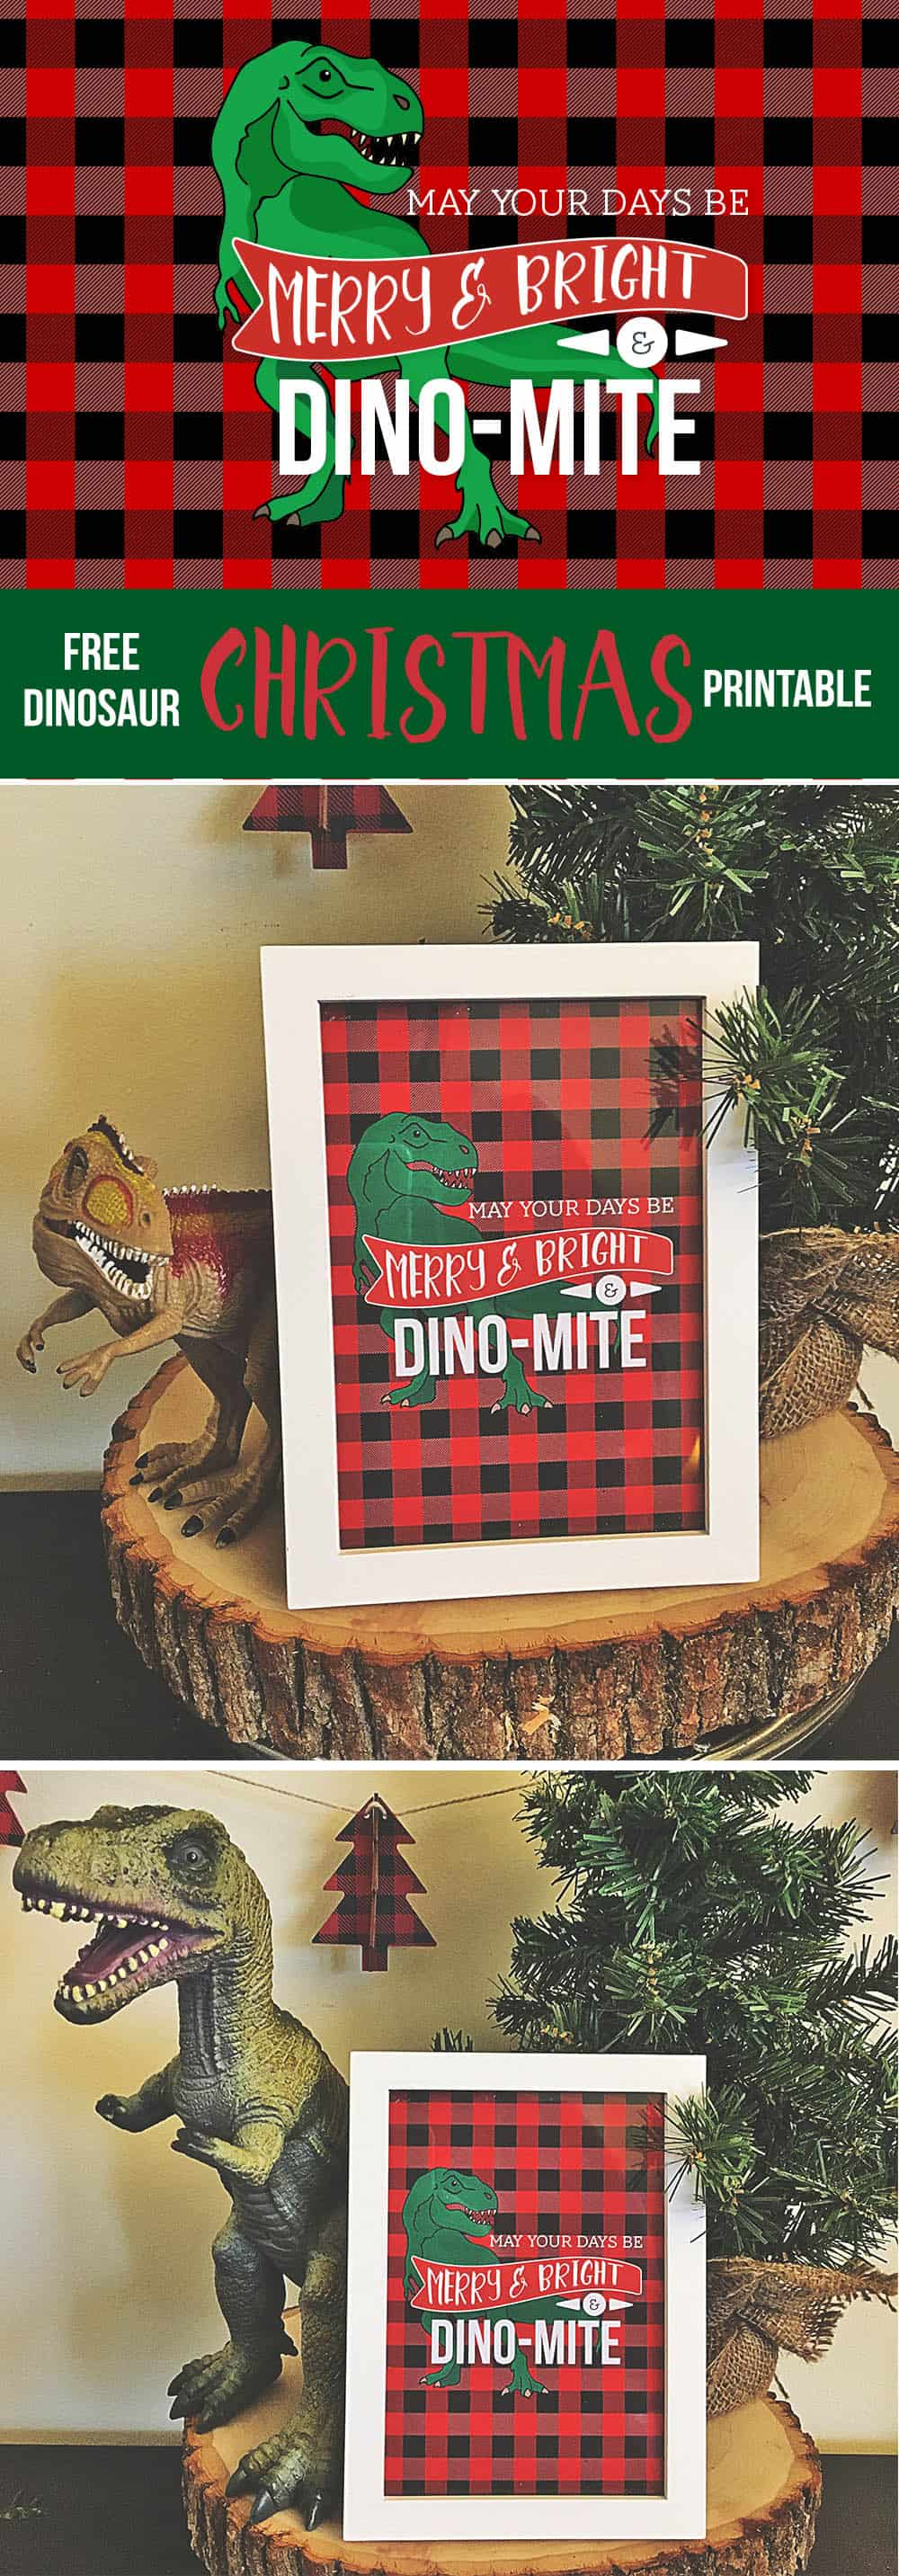 Free Dinosaur Christmas printable from Elva M Design Studio